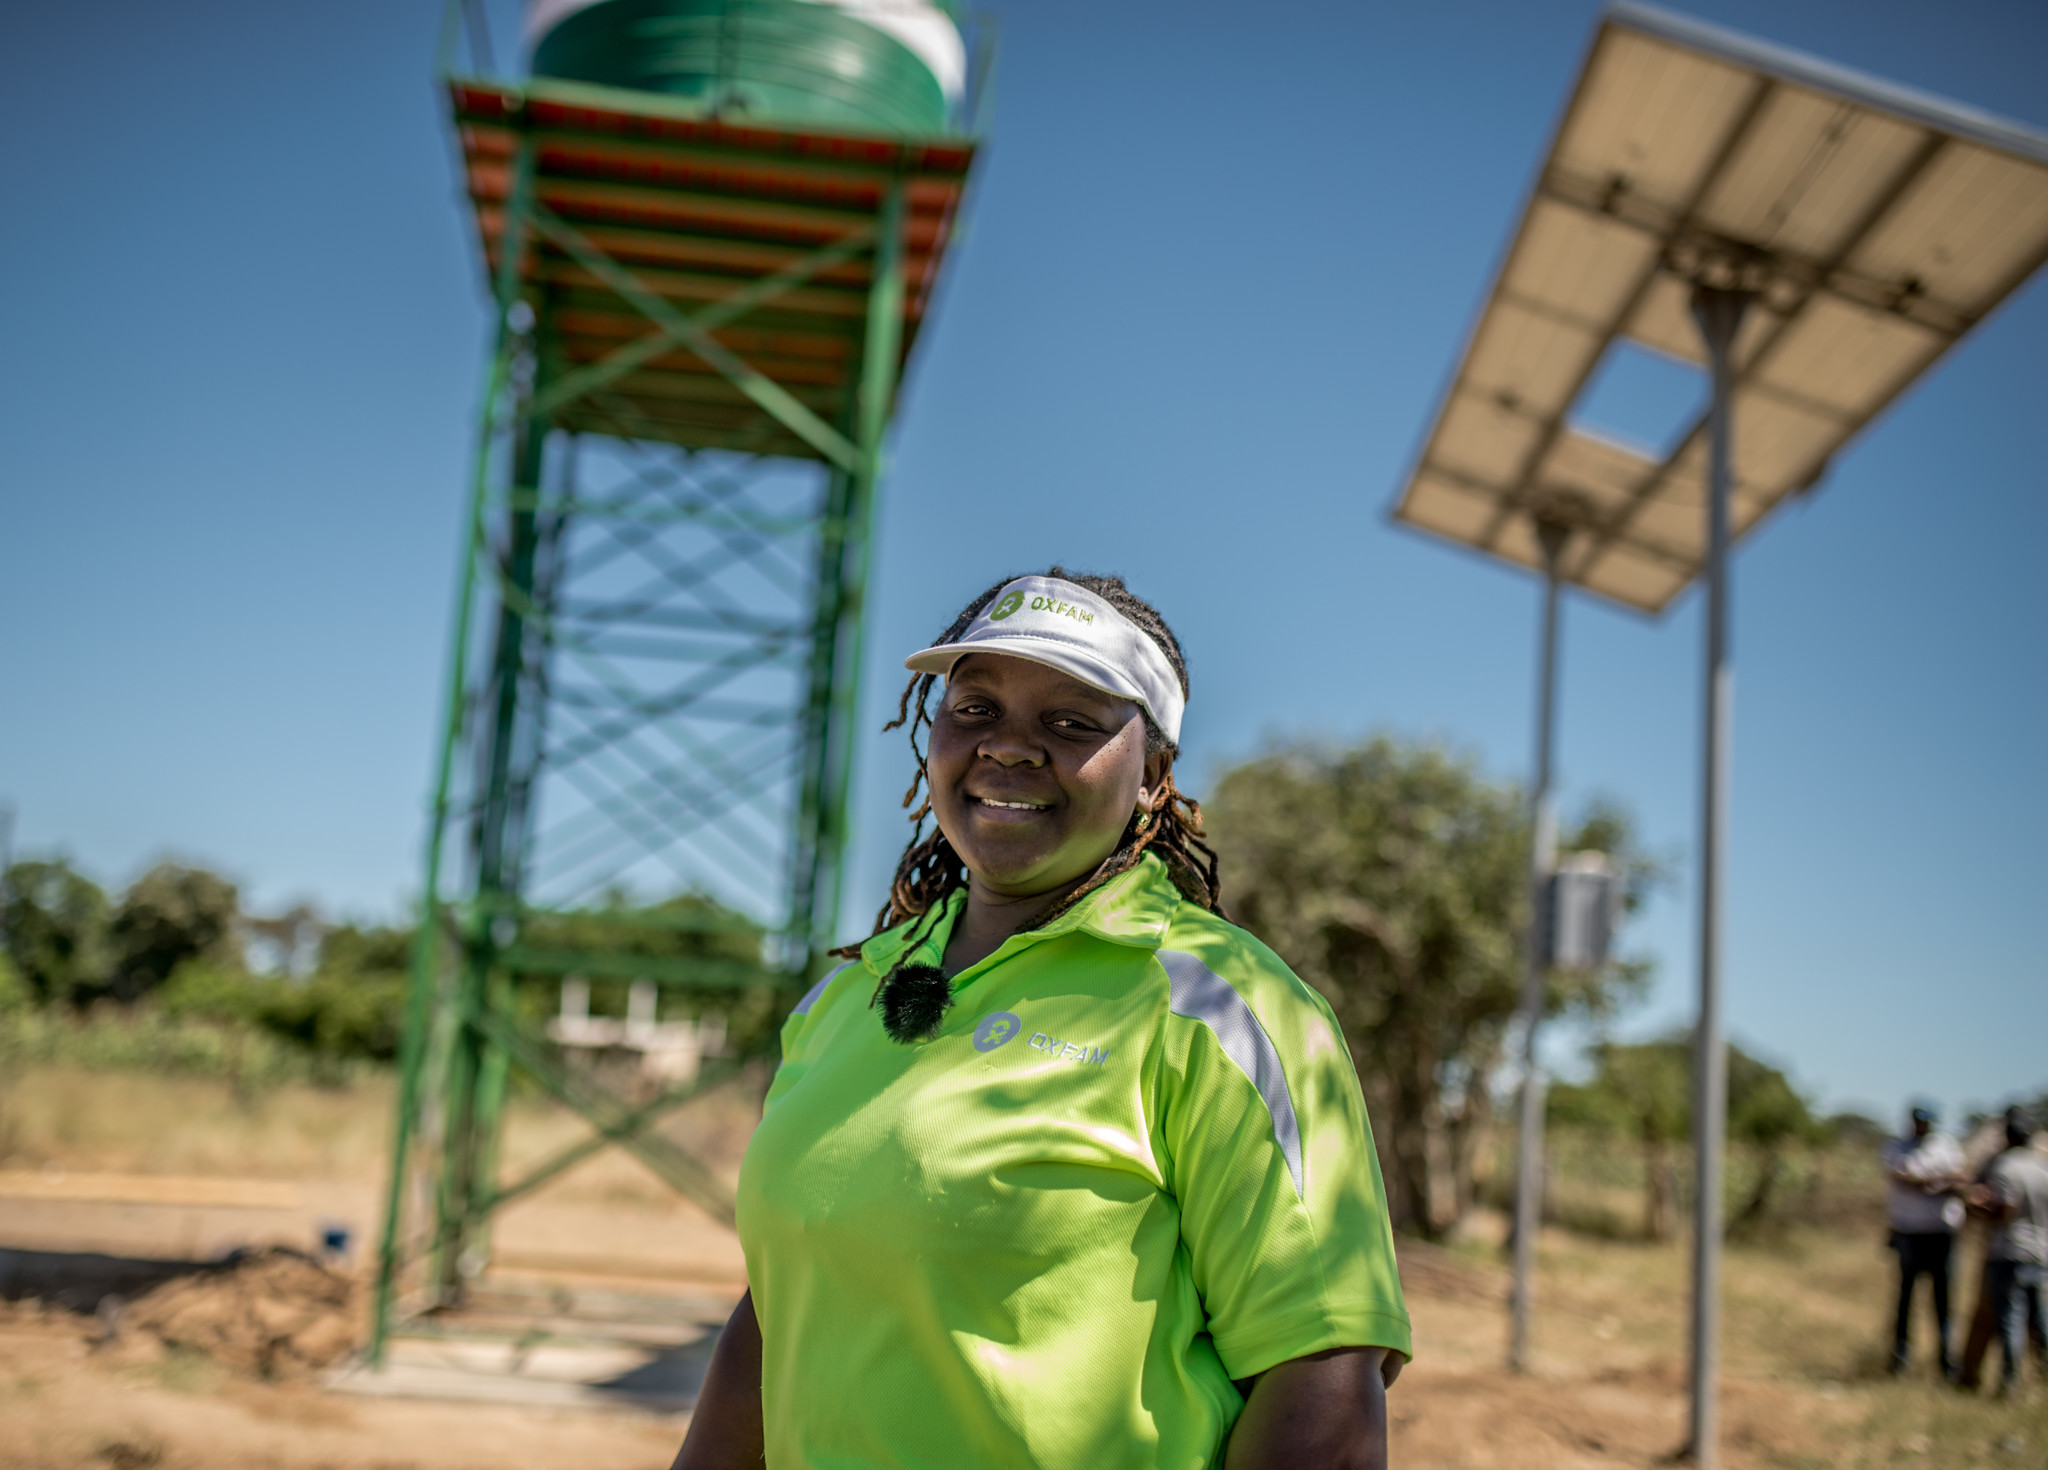 Takudzwa at the Oxfam-funded solar piped water system